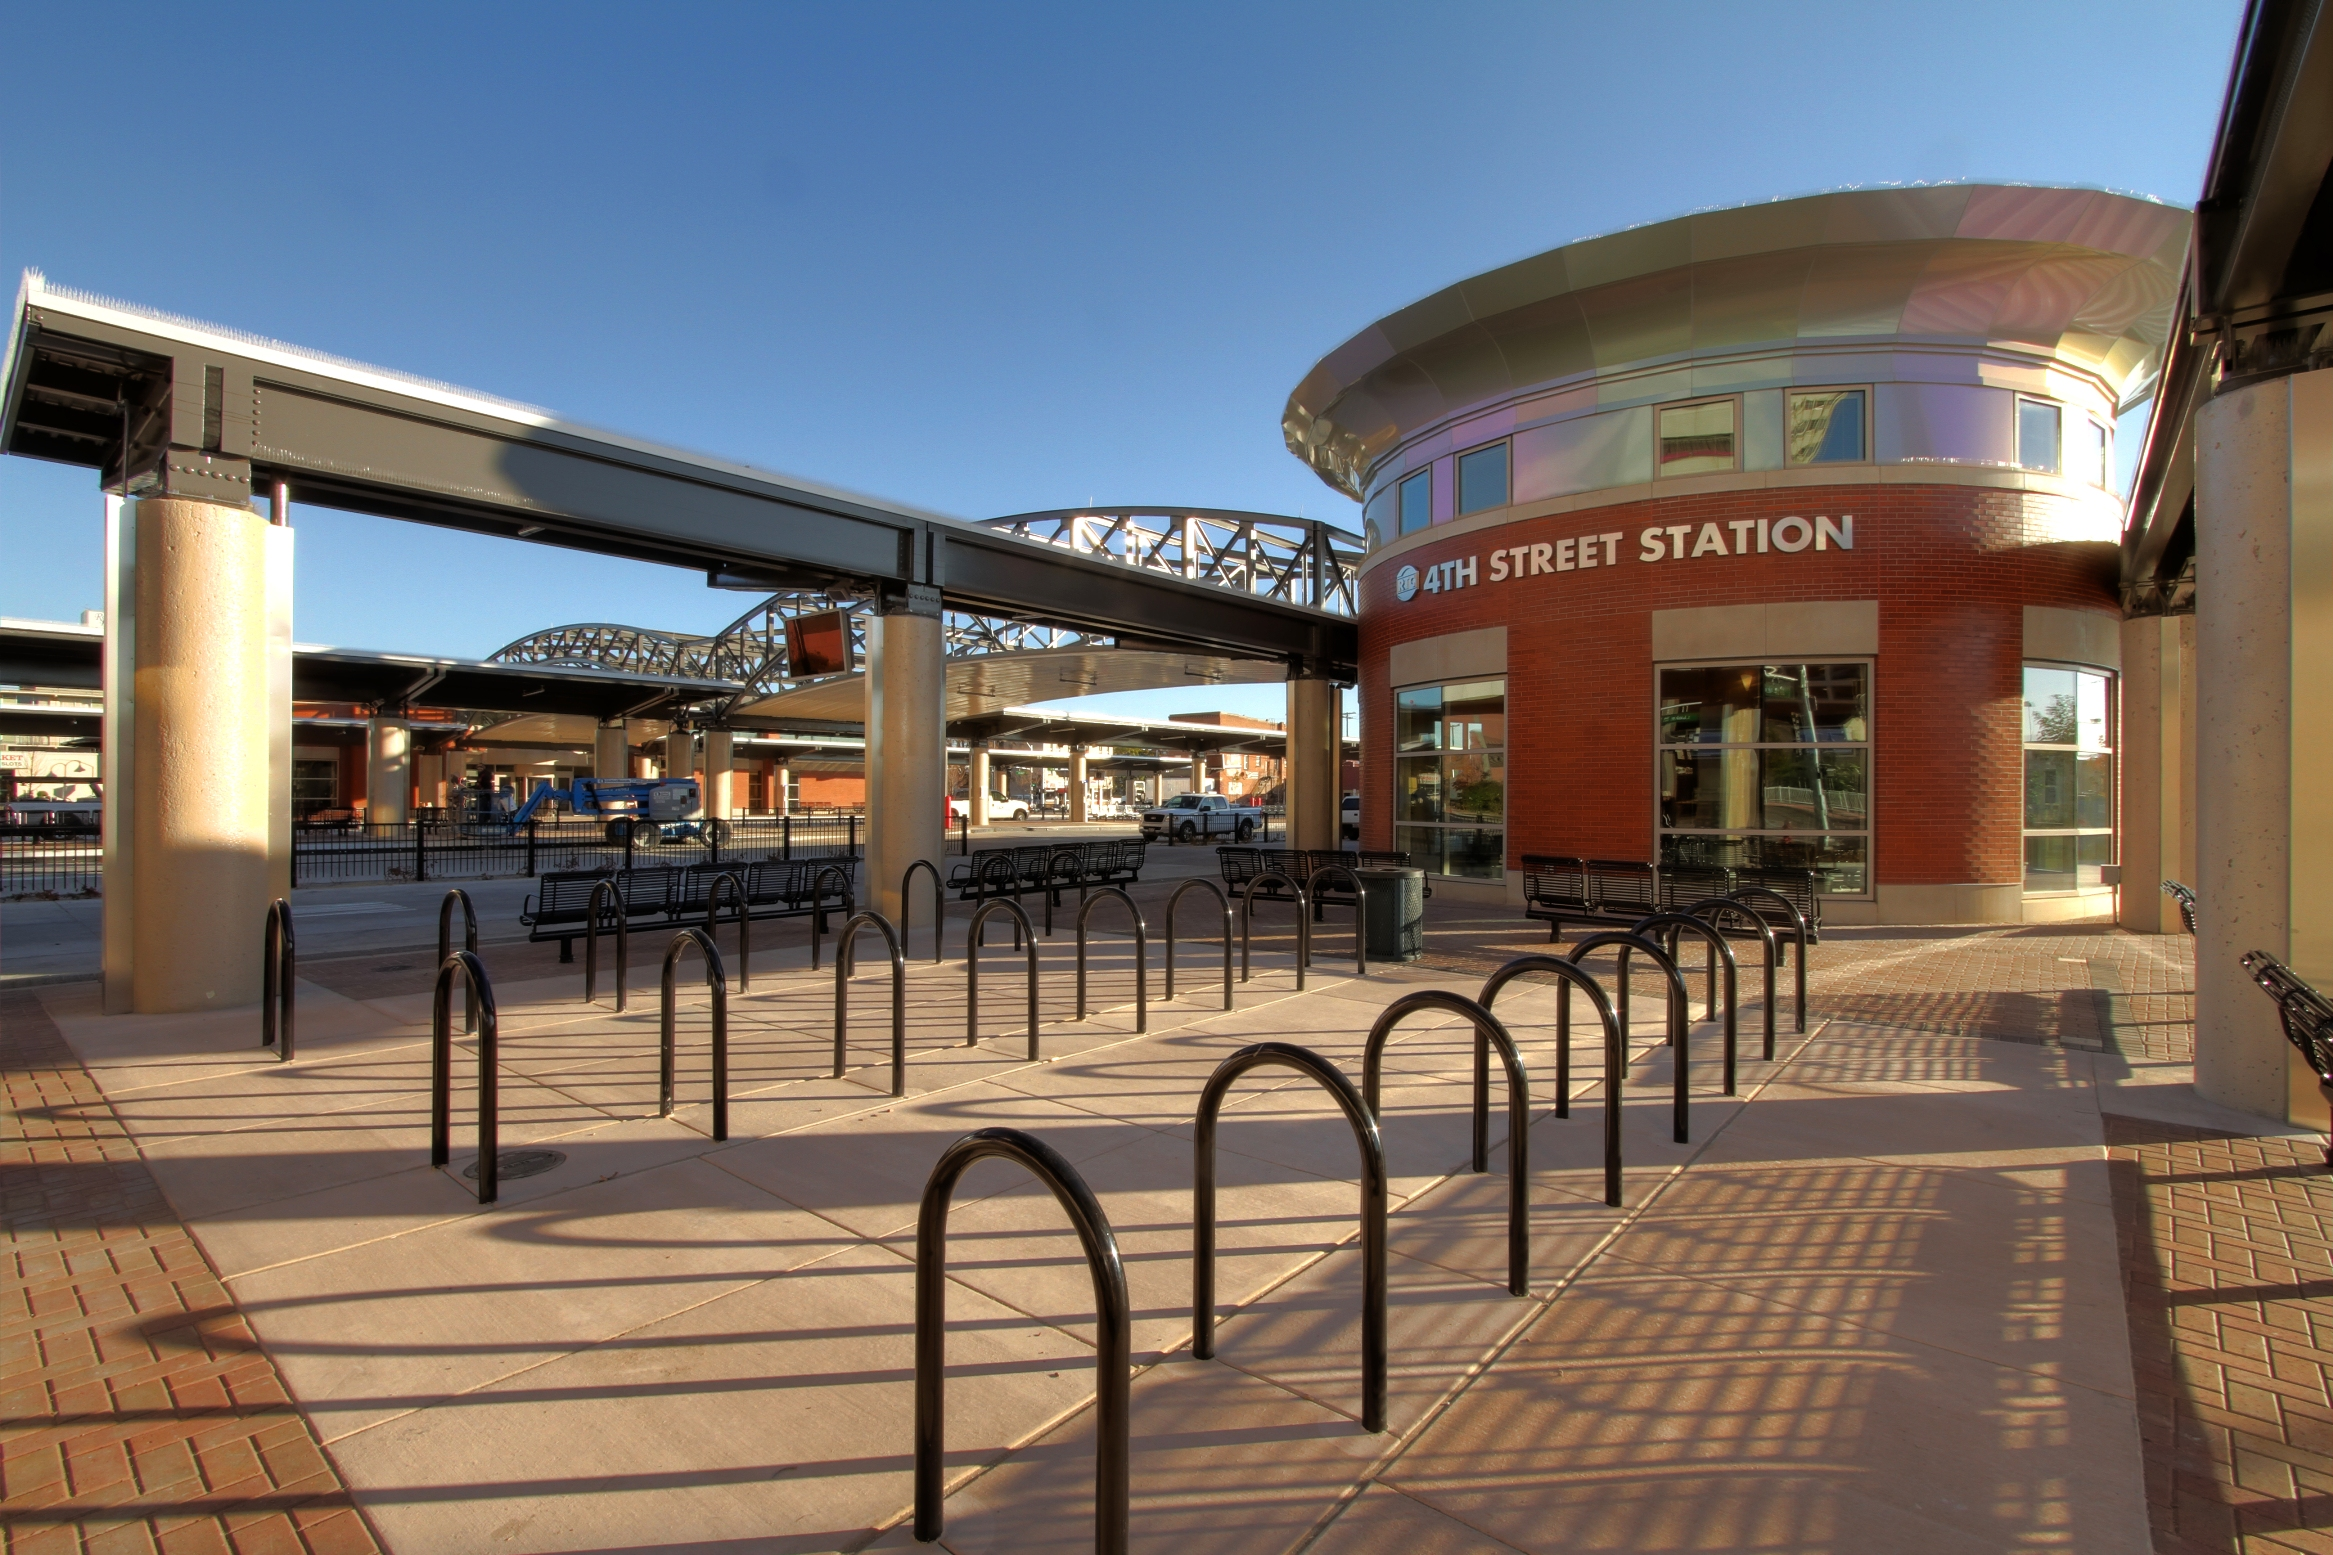 RTC Transit Center 064.jpg